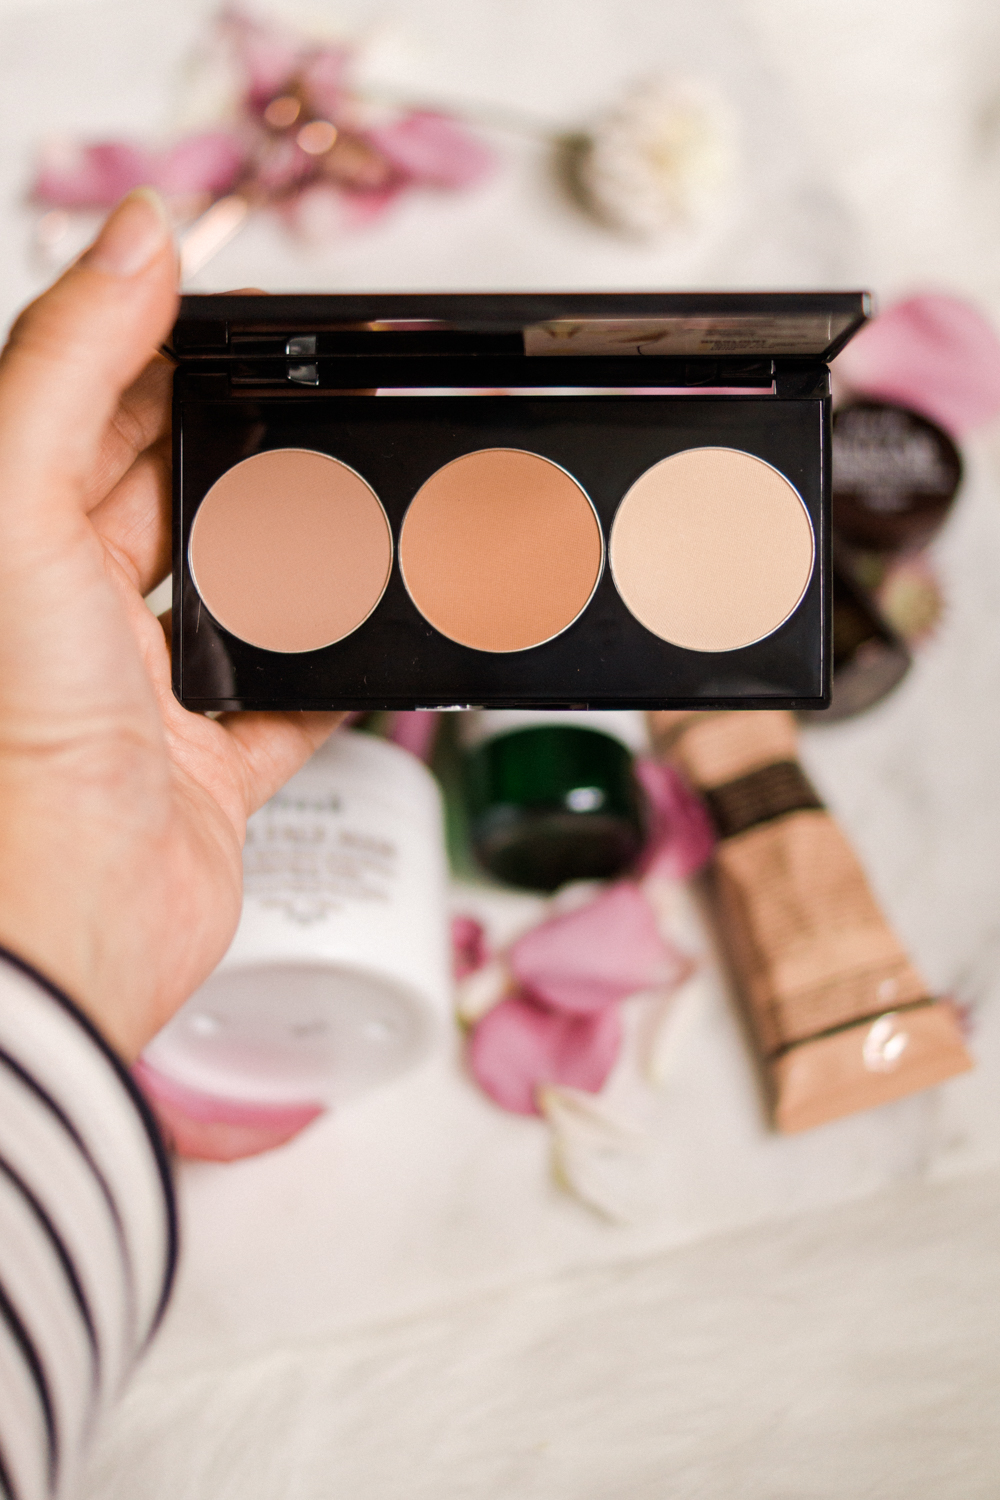 smashbox-contour-kit-autumn-beauty-favourites-barely-there-beauty-blog